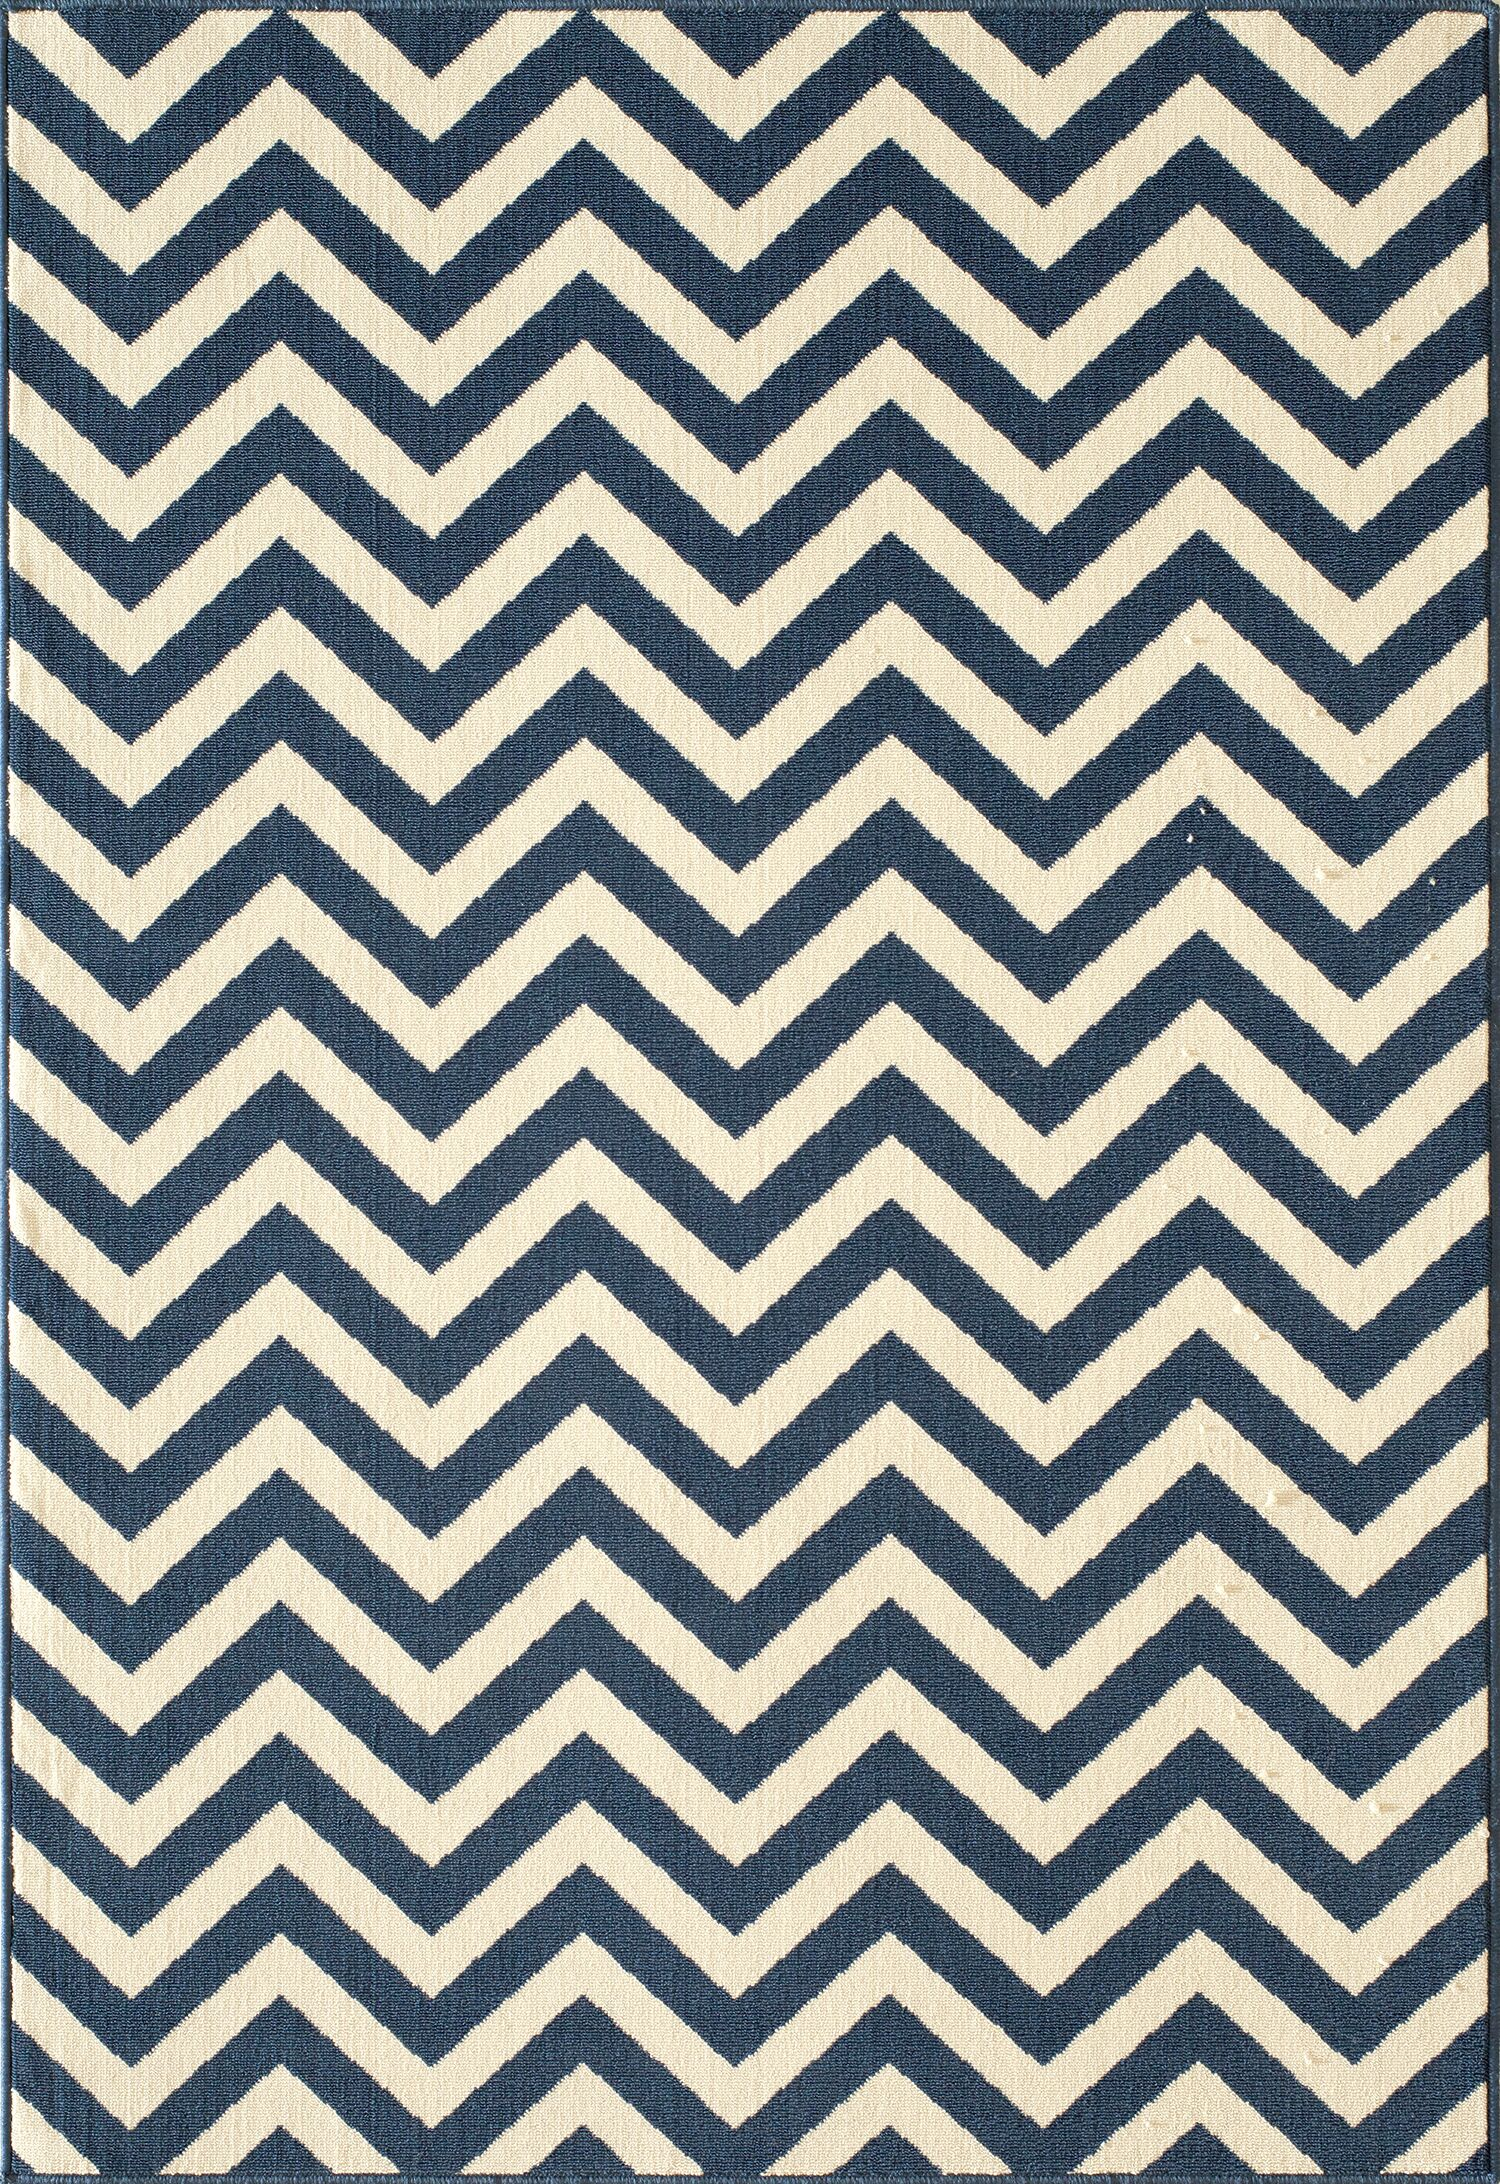 Halliday Navy/White Area Rug Rug Size: Rectangle 8'6